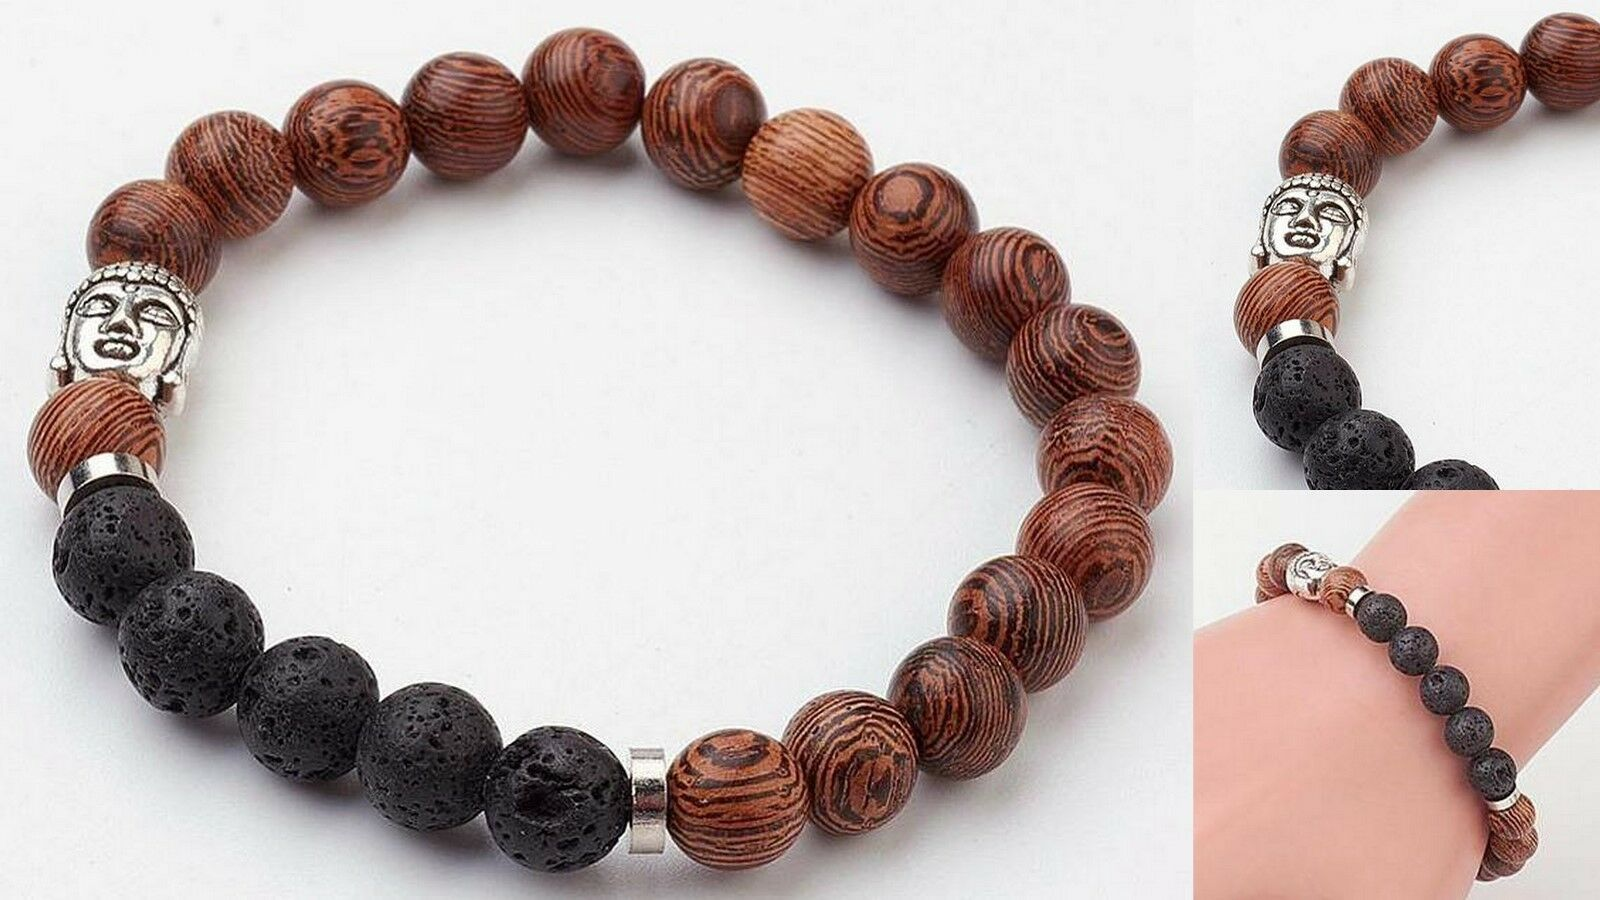 3ea7ce603ebee Buddha Natural Lava Bead Wood Aromatherapy Diffuser Scent Bracelet  Essential Oil